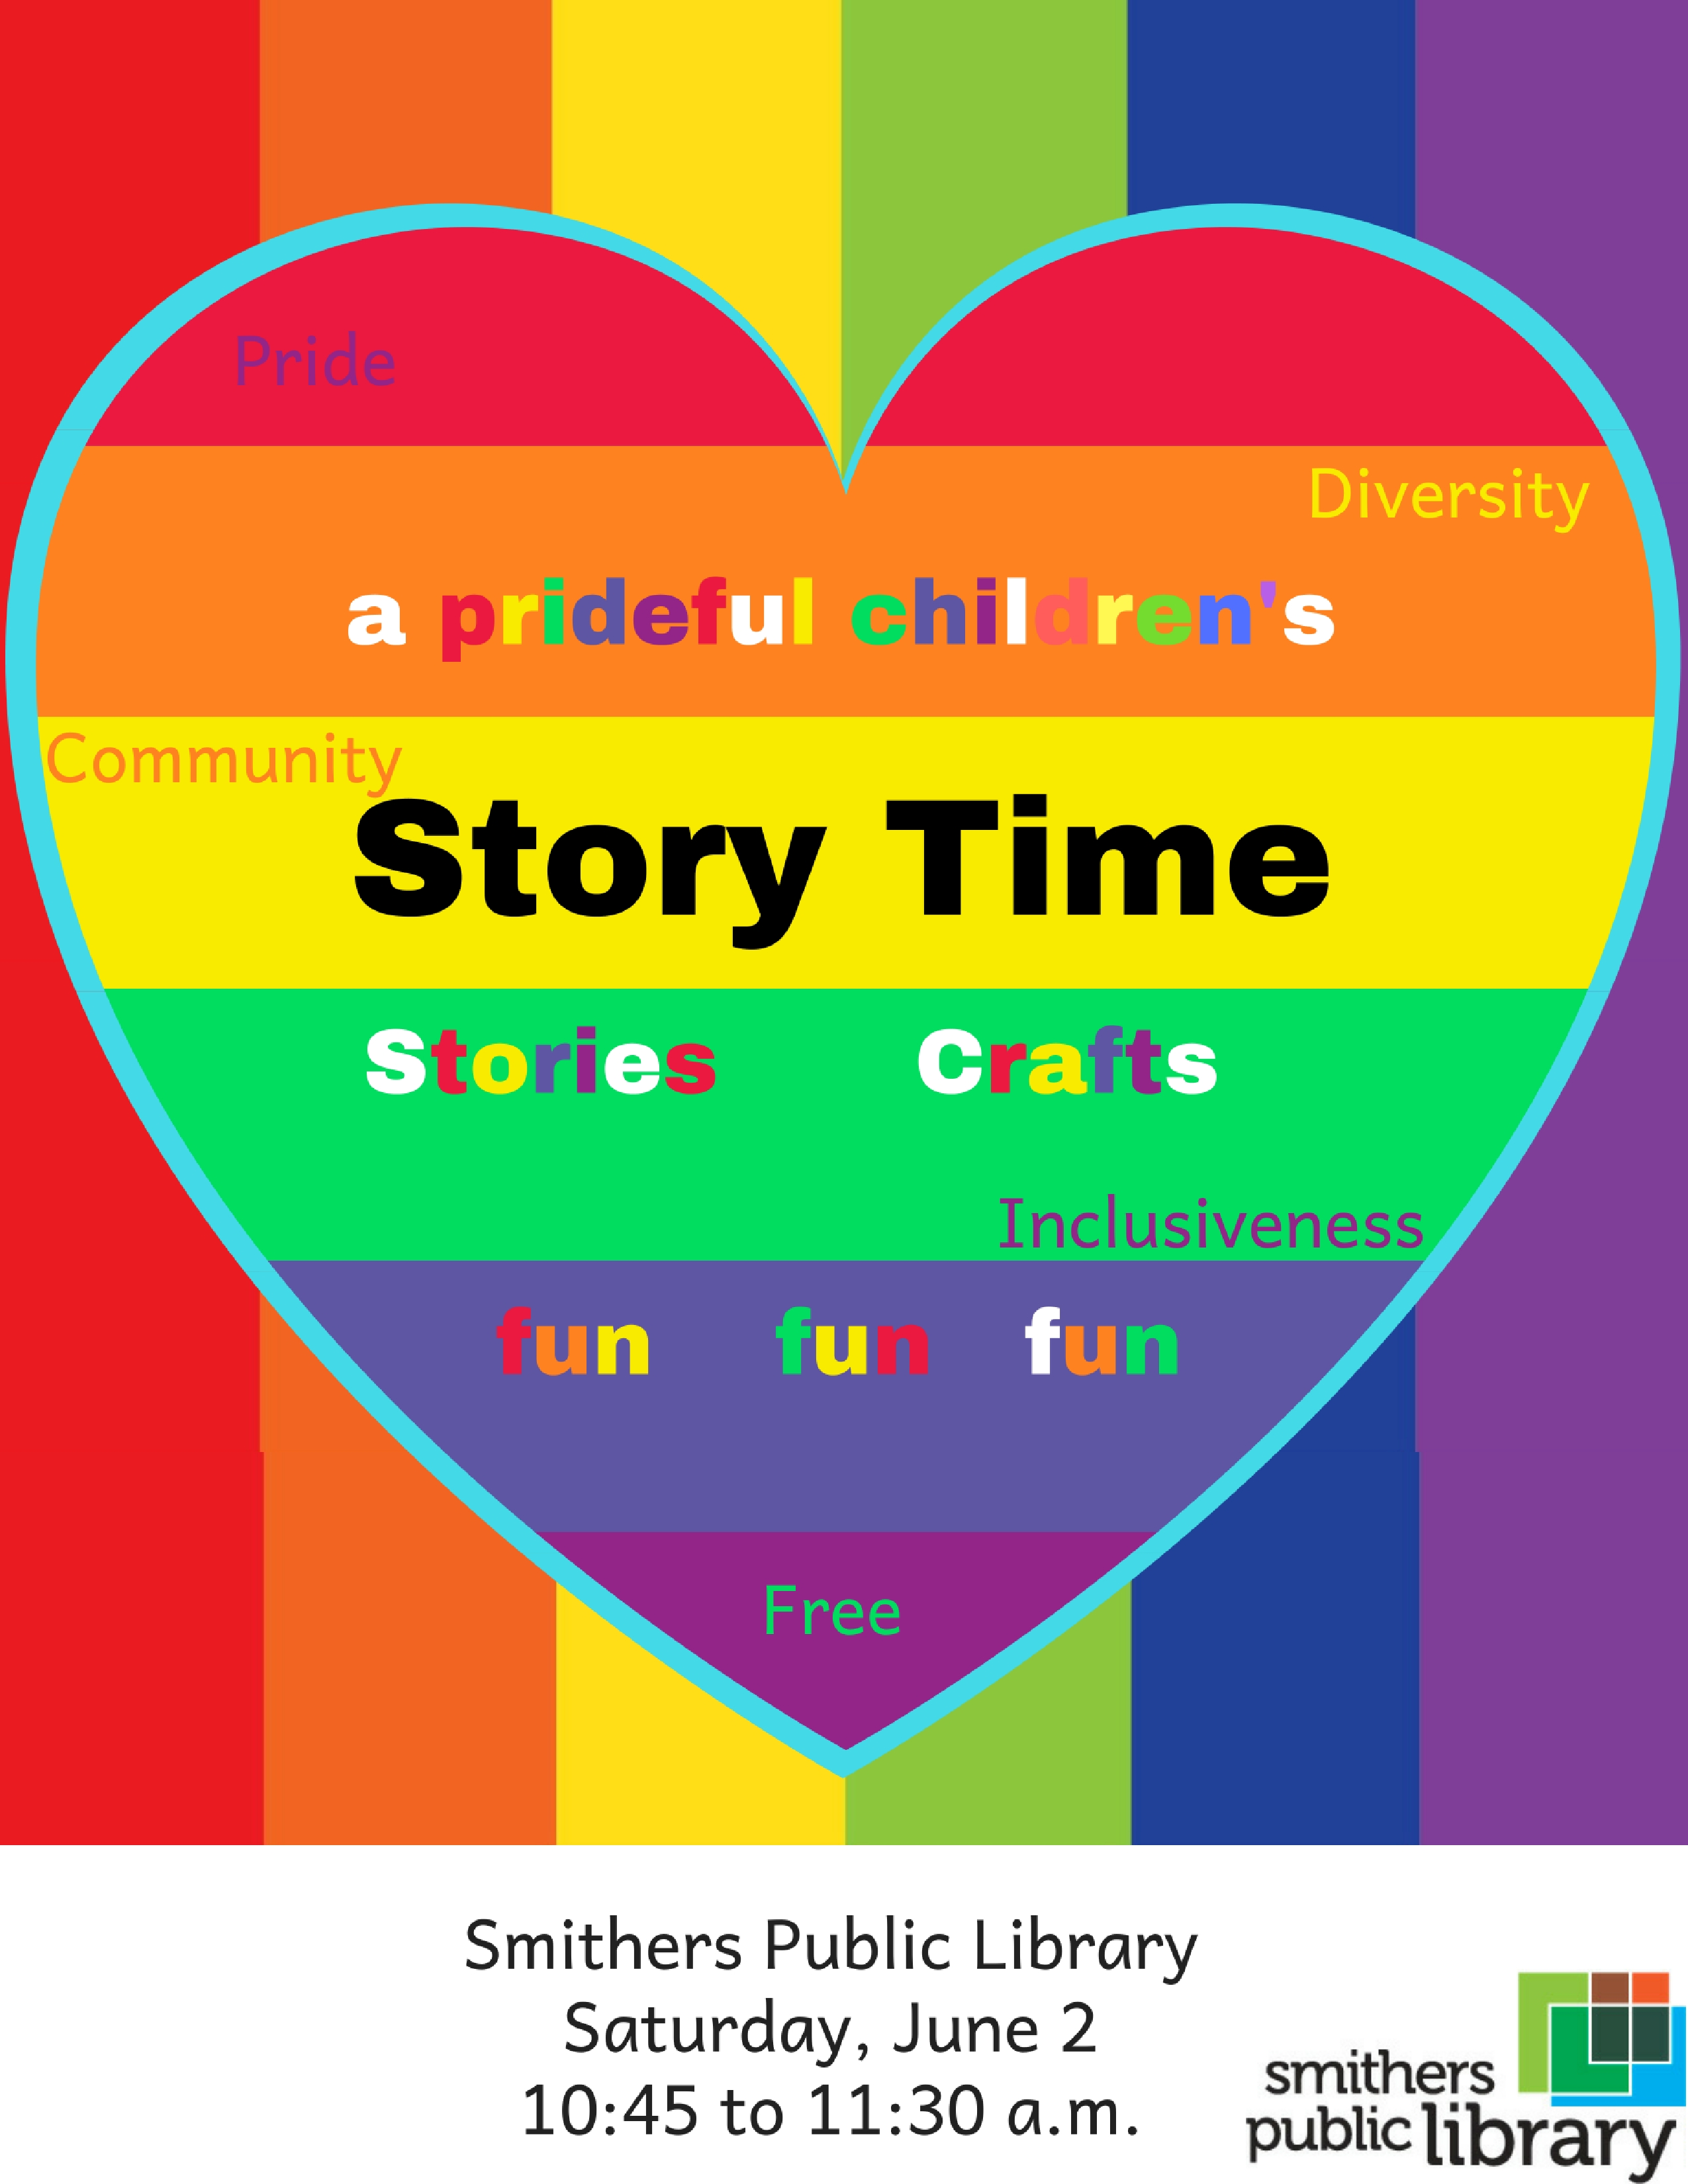 Pride Story Time @ Smithers Public Library